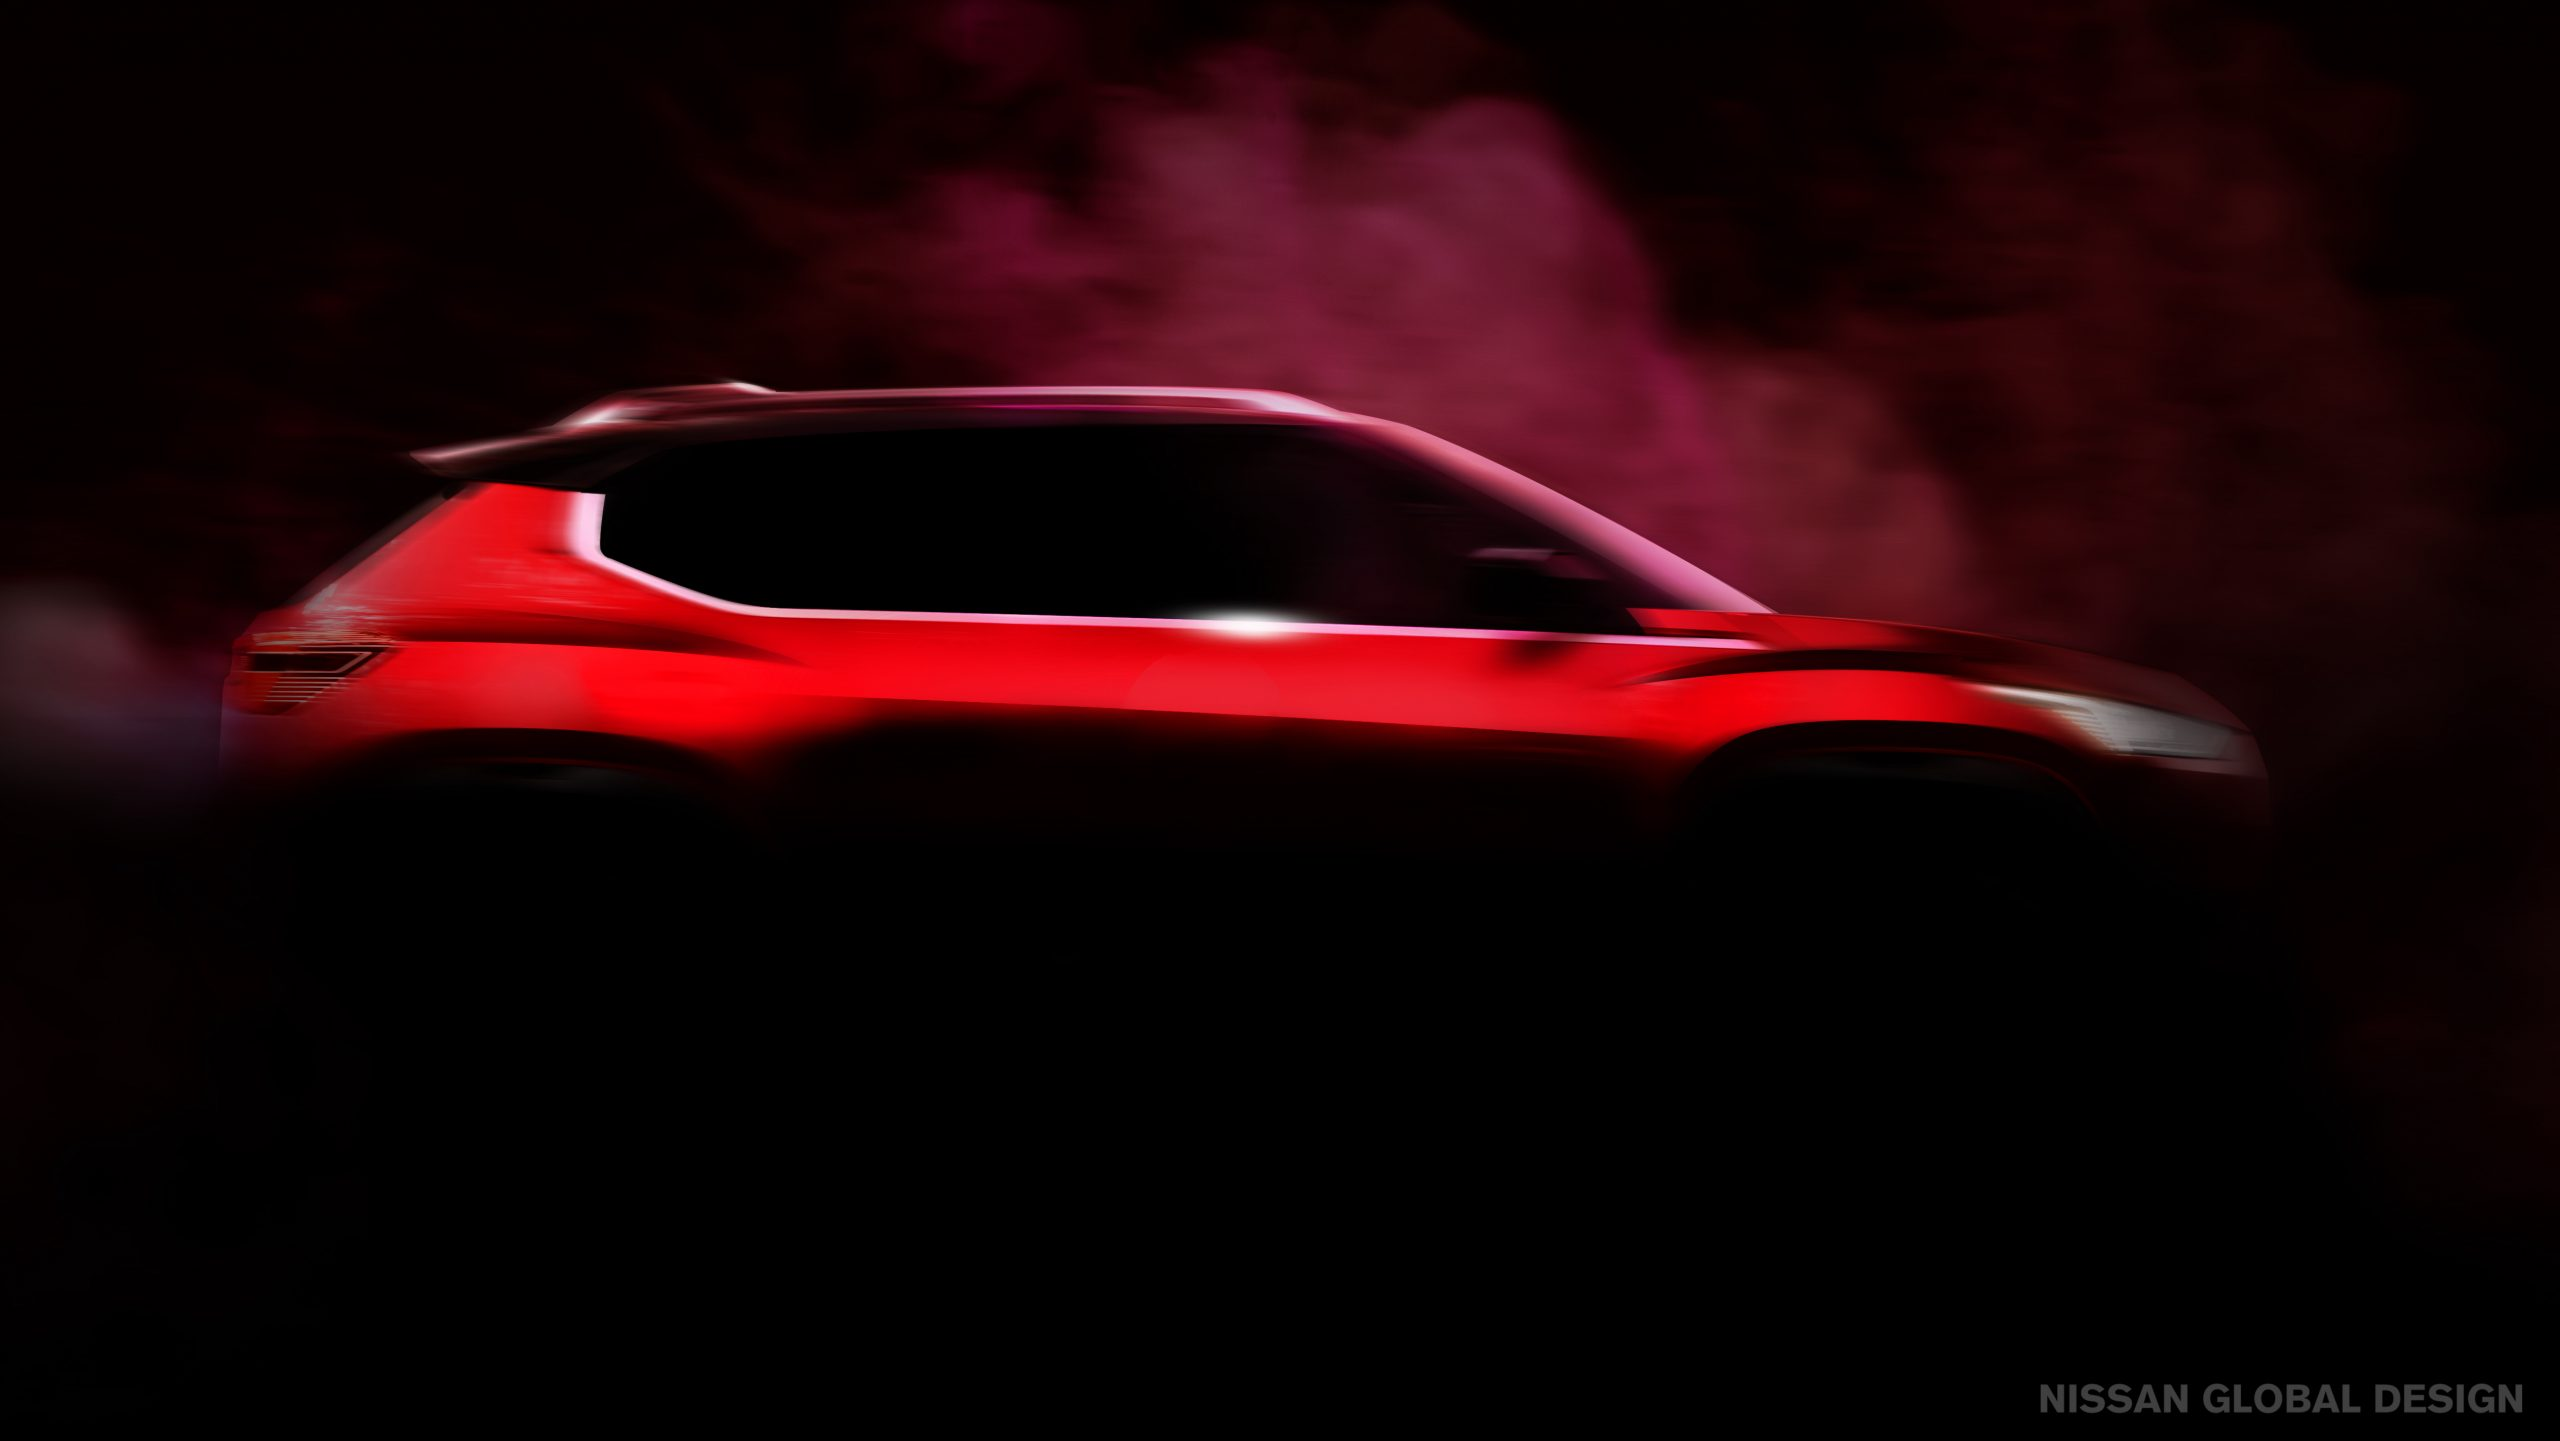 Photo of Nissan B-SUV: Nissan to launch a new compact SUV in 2020